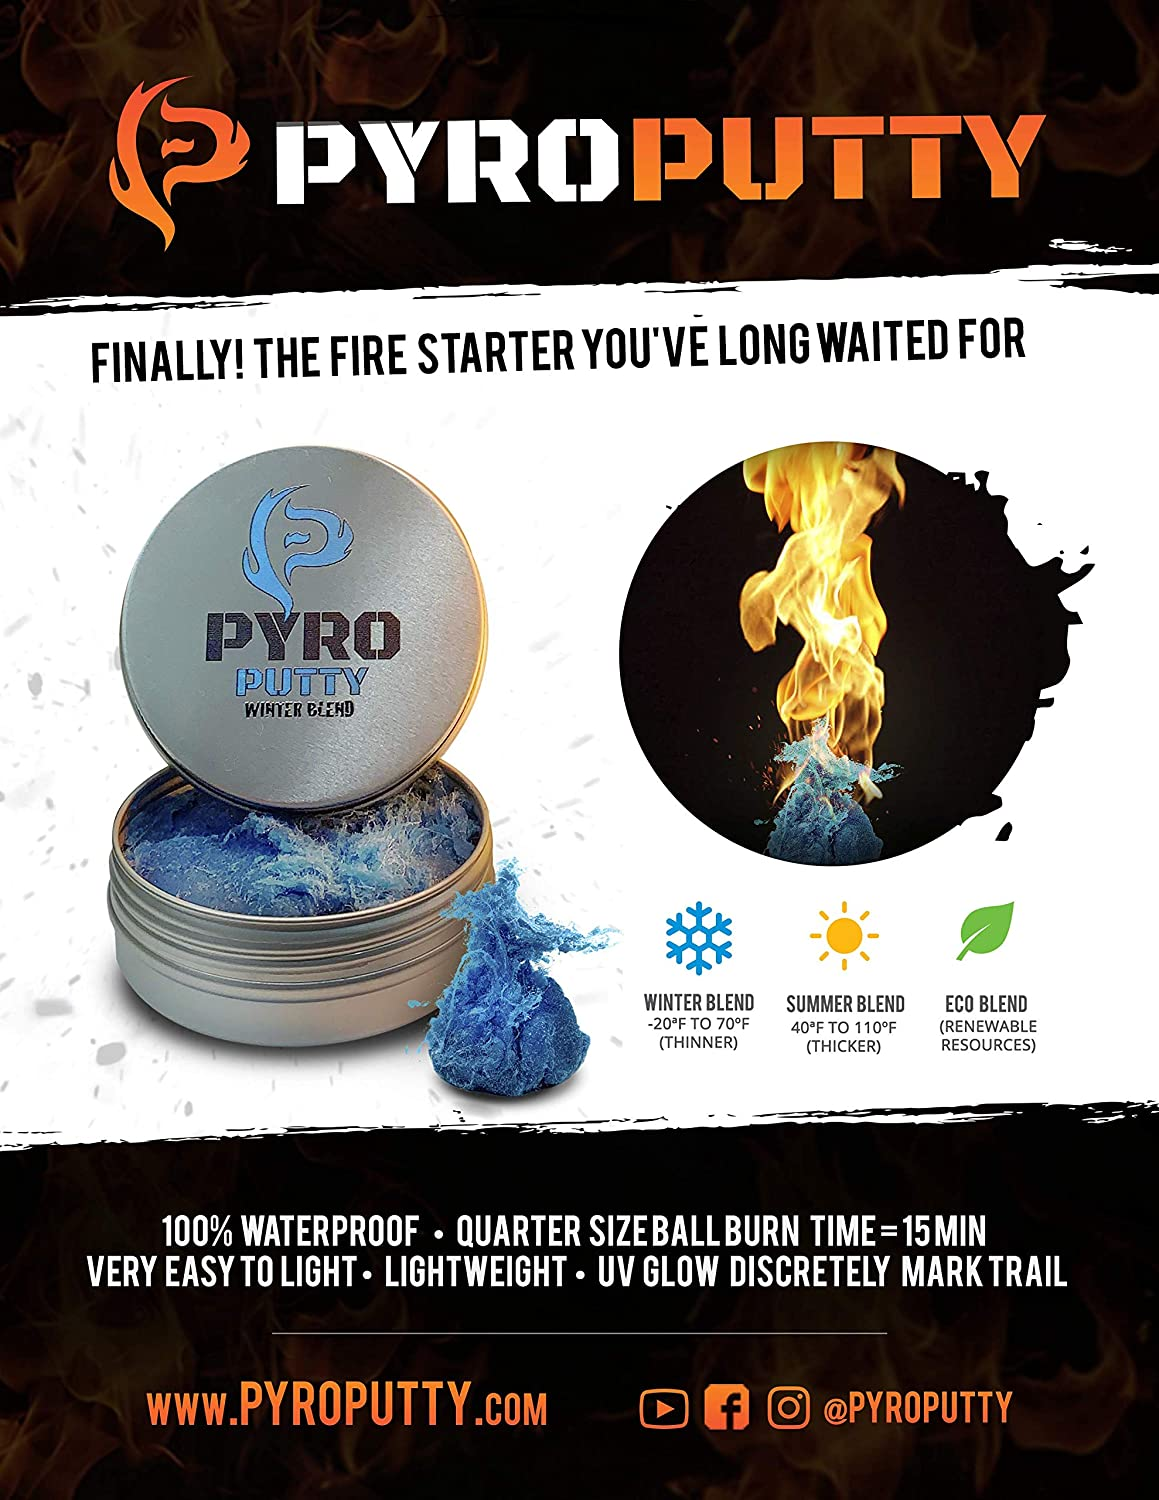 Pyro Putty Multi Season Set Pliable Fire Starter for Camping Hiking  Survival Emergency Water Proof Winter Summer Eco Environment Friendly